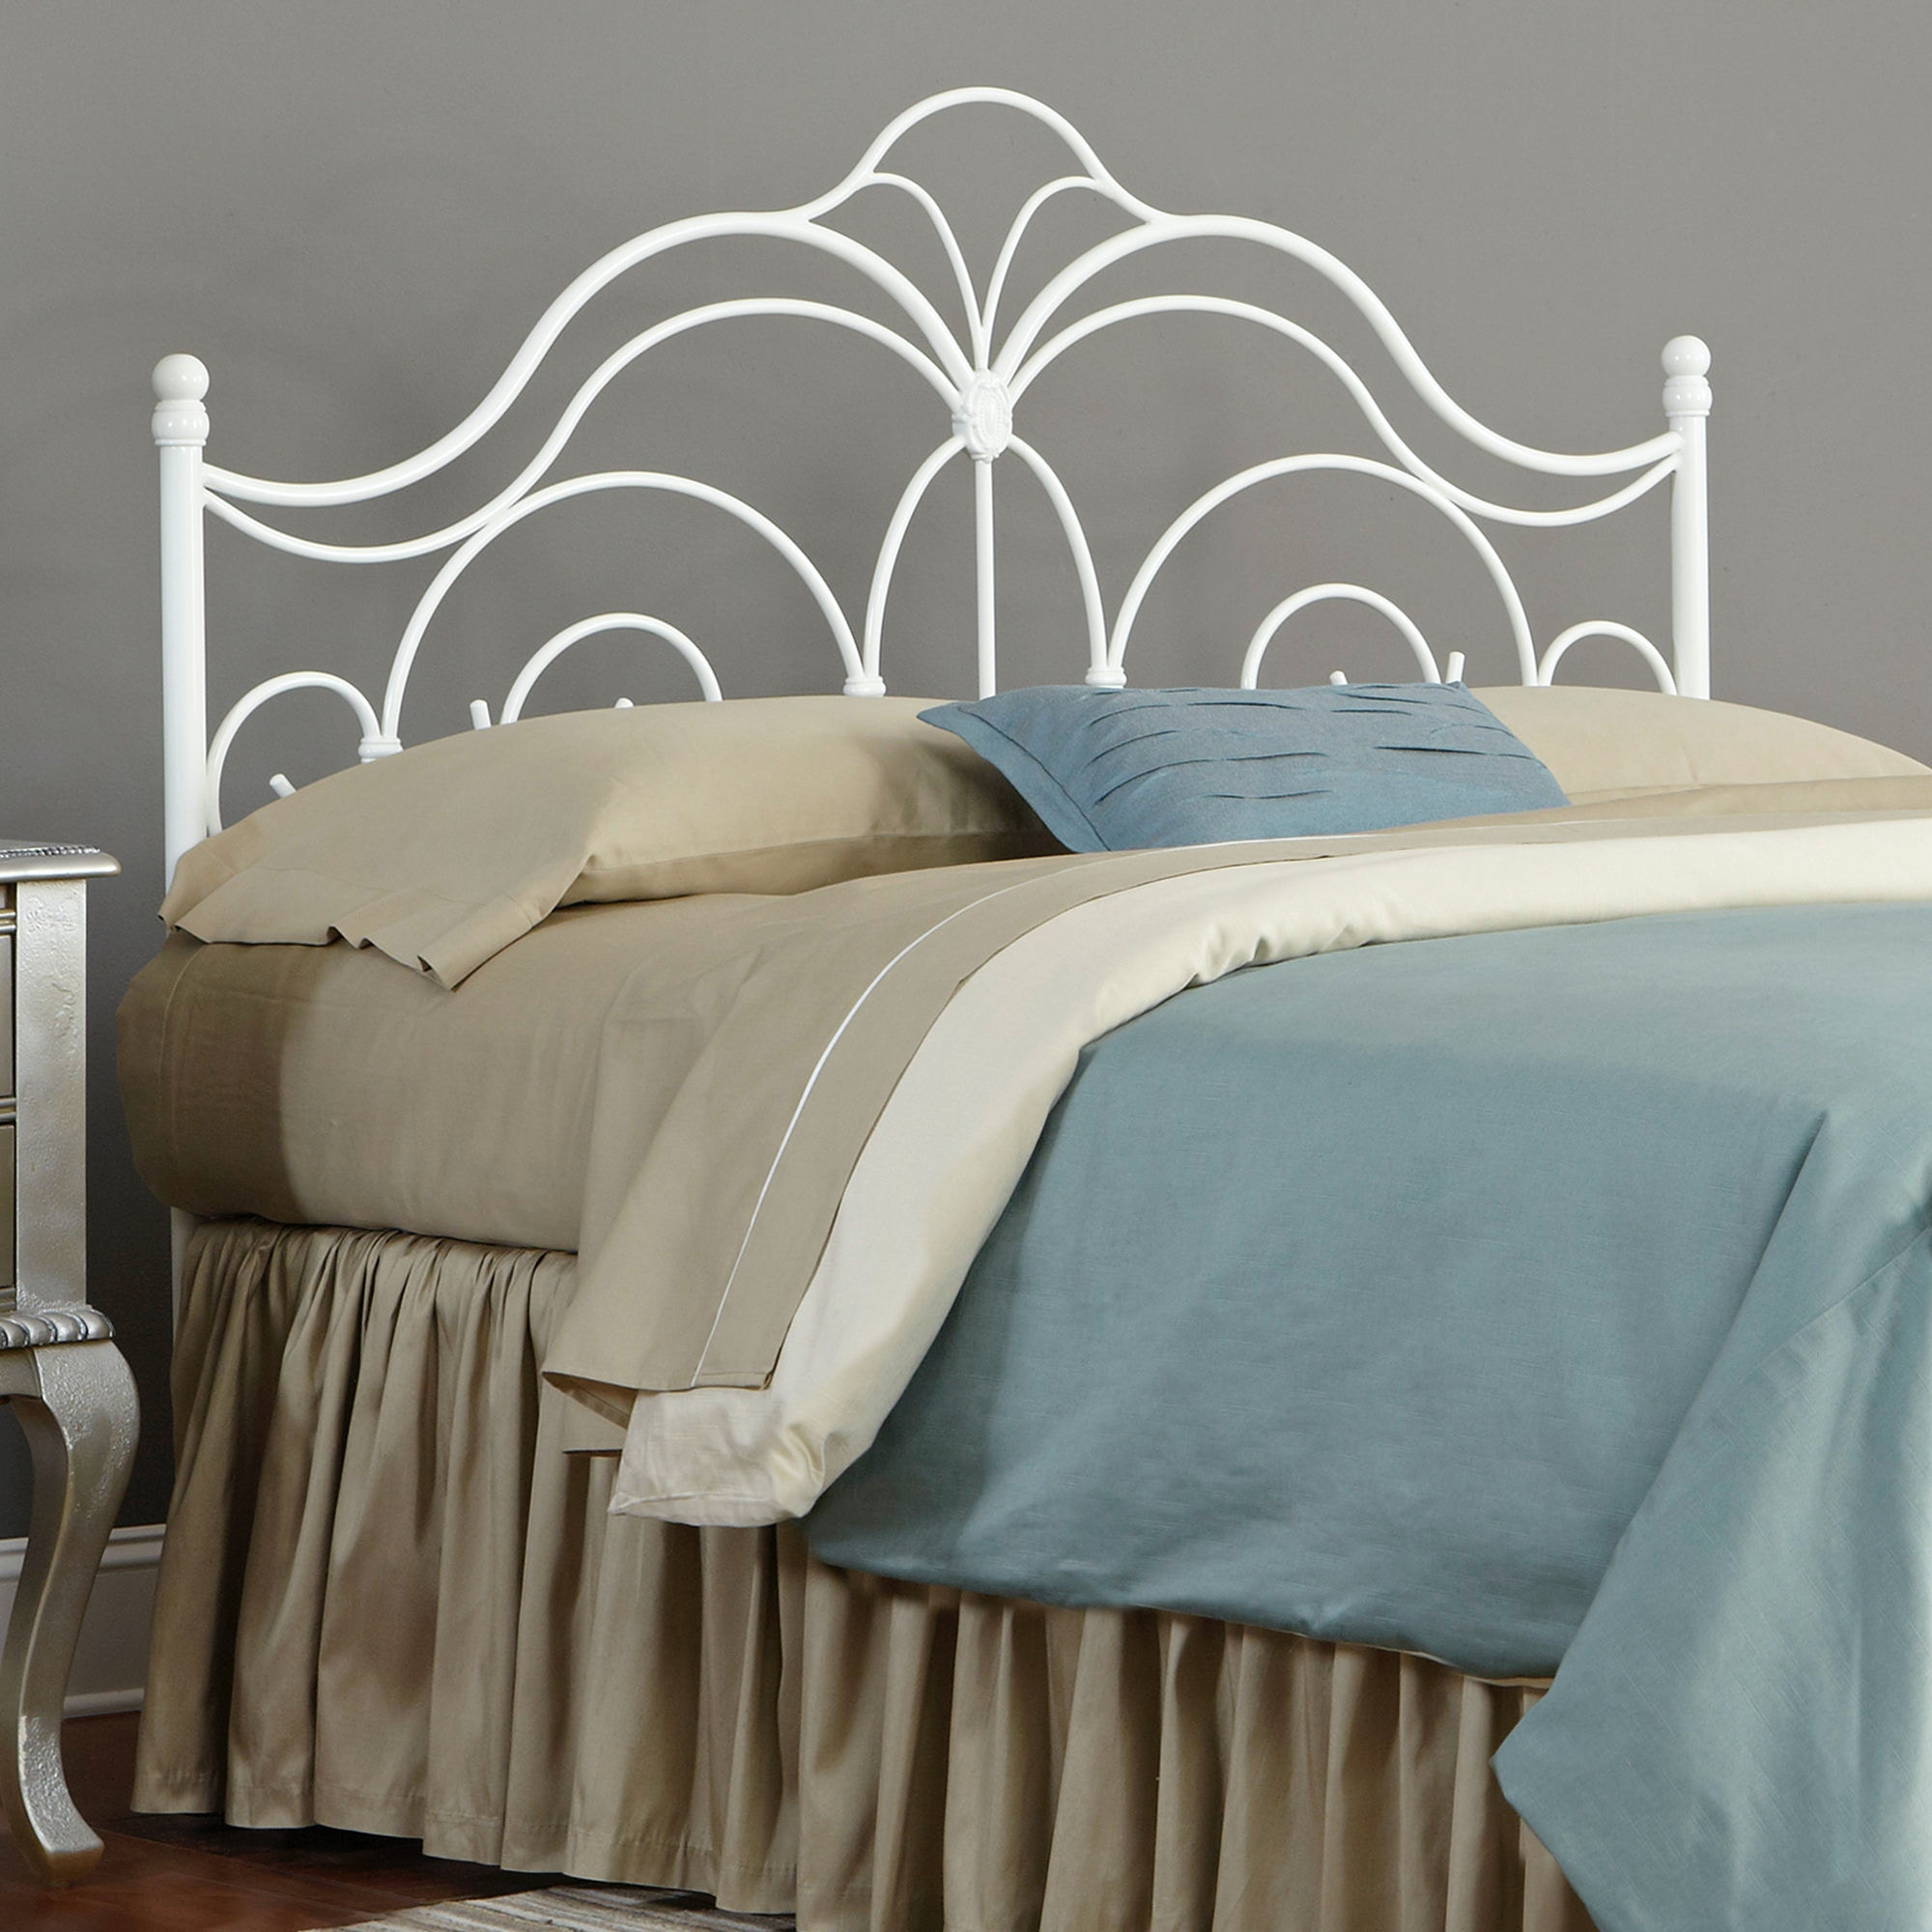 colors for bedroom leggett amp platt bedroom rhapsody complete metal bed and 11175 | b12177.rhapsody main